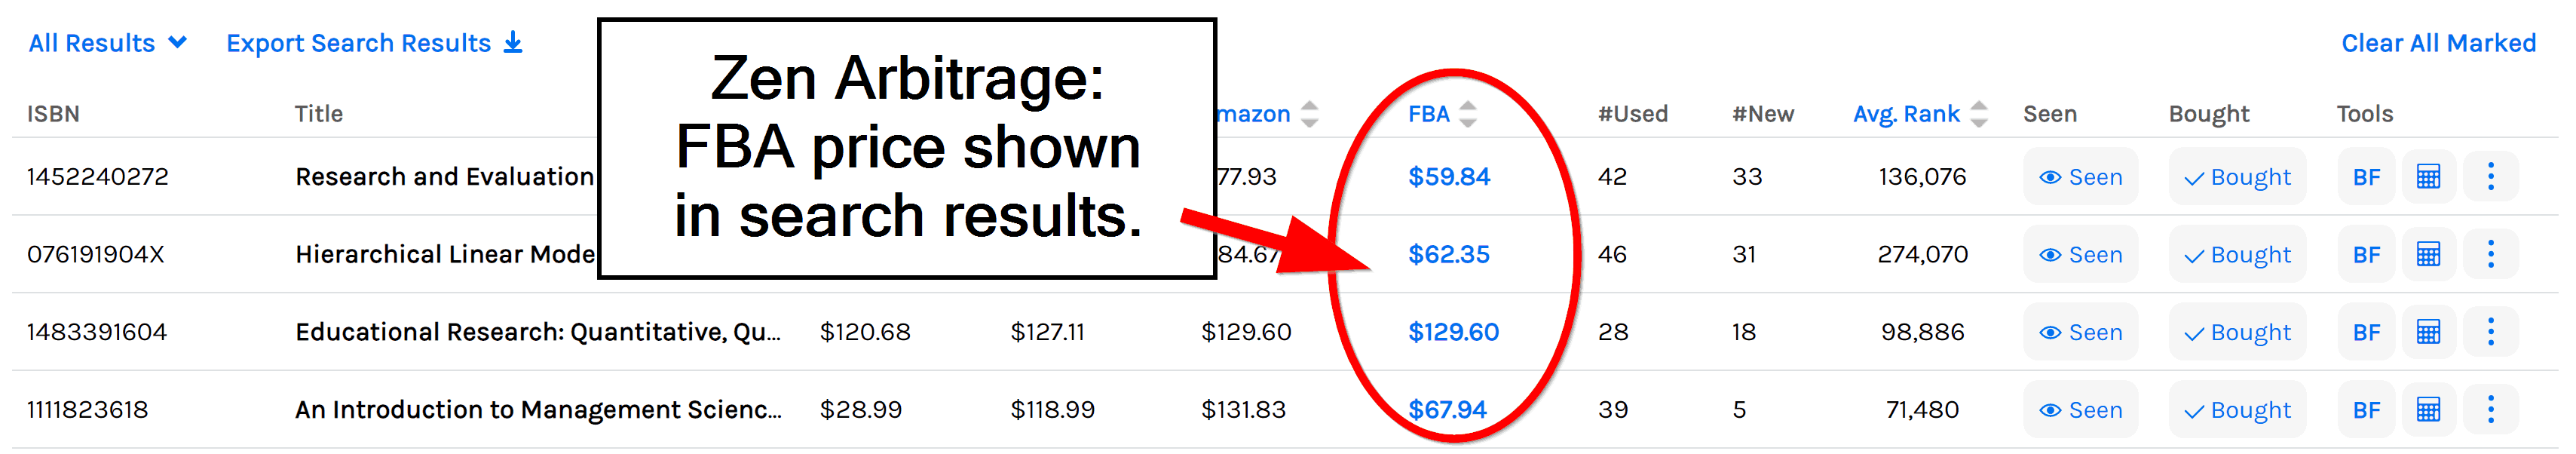 Zen Arbitrage shows the FBA price.